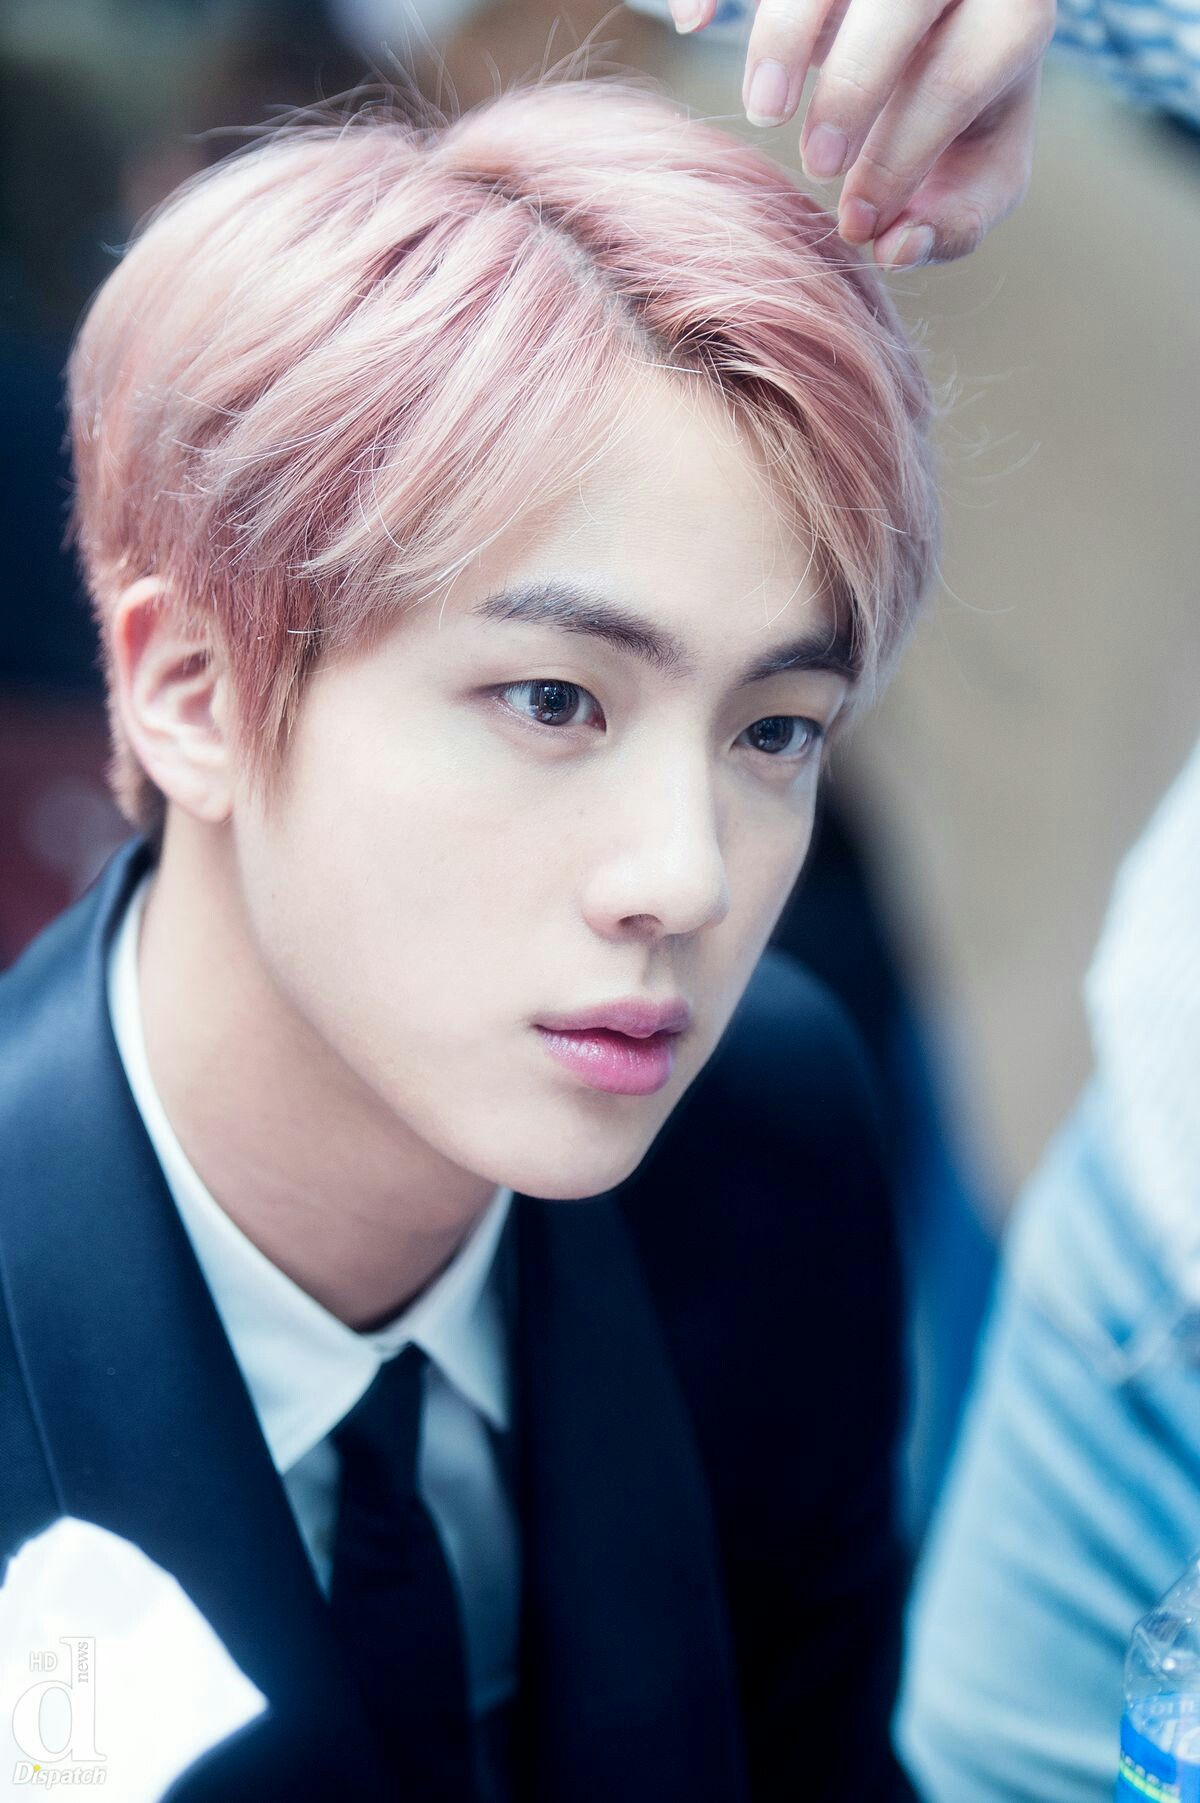 Jin Bts Imagenes Kim Seok Jin Hd Fondo De Pantalla And Background Kpop Hair Asian Boy Haircuts Mens Hair Colour